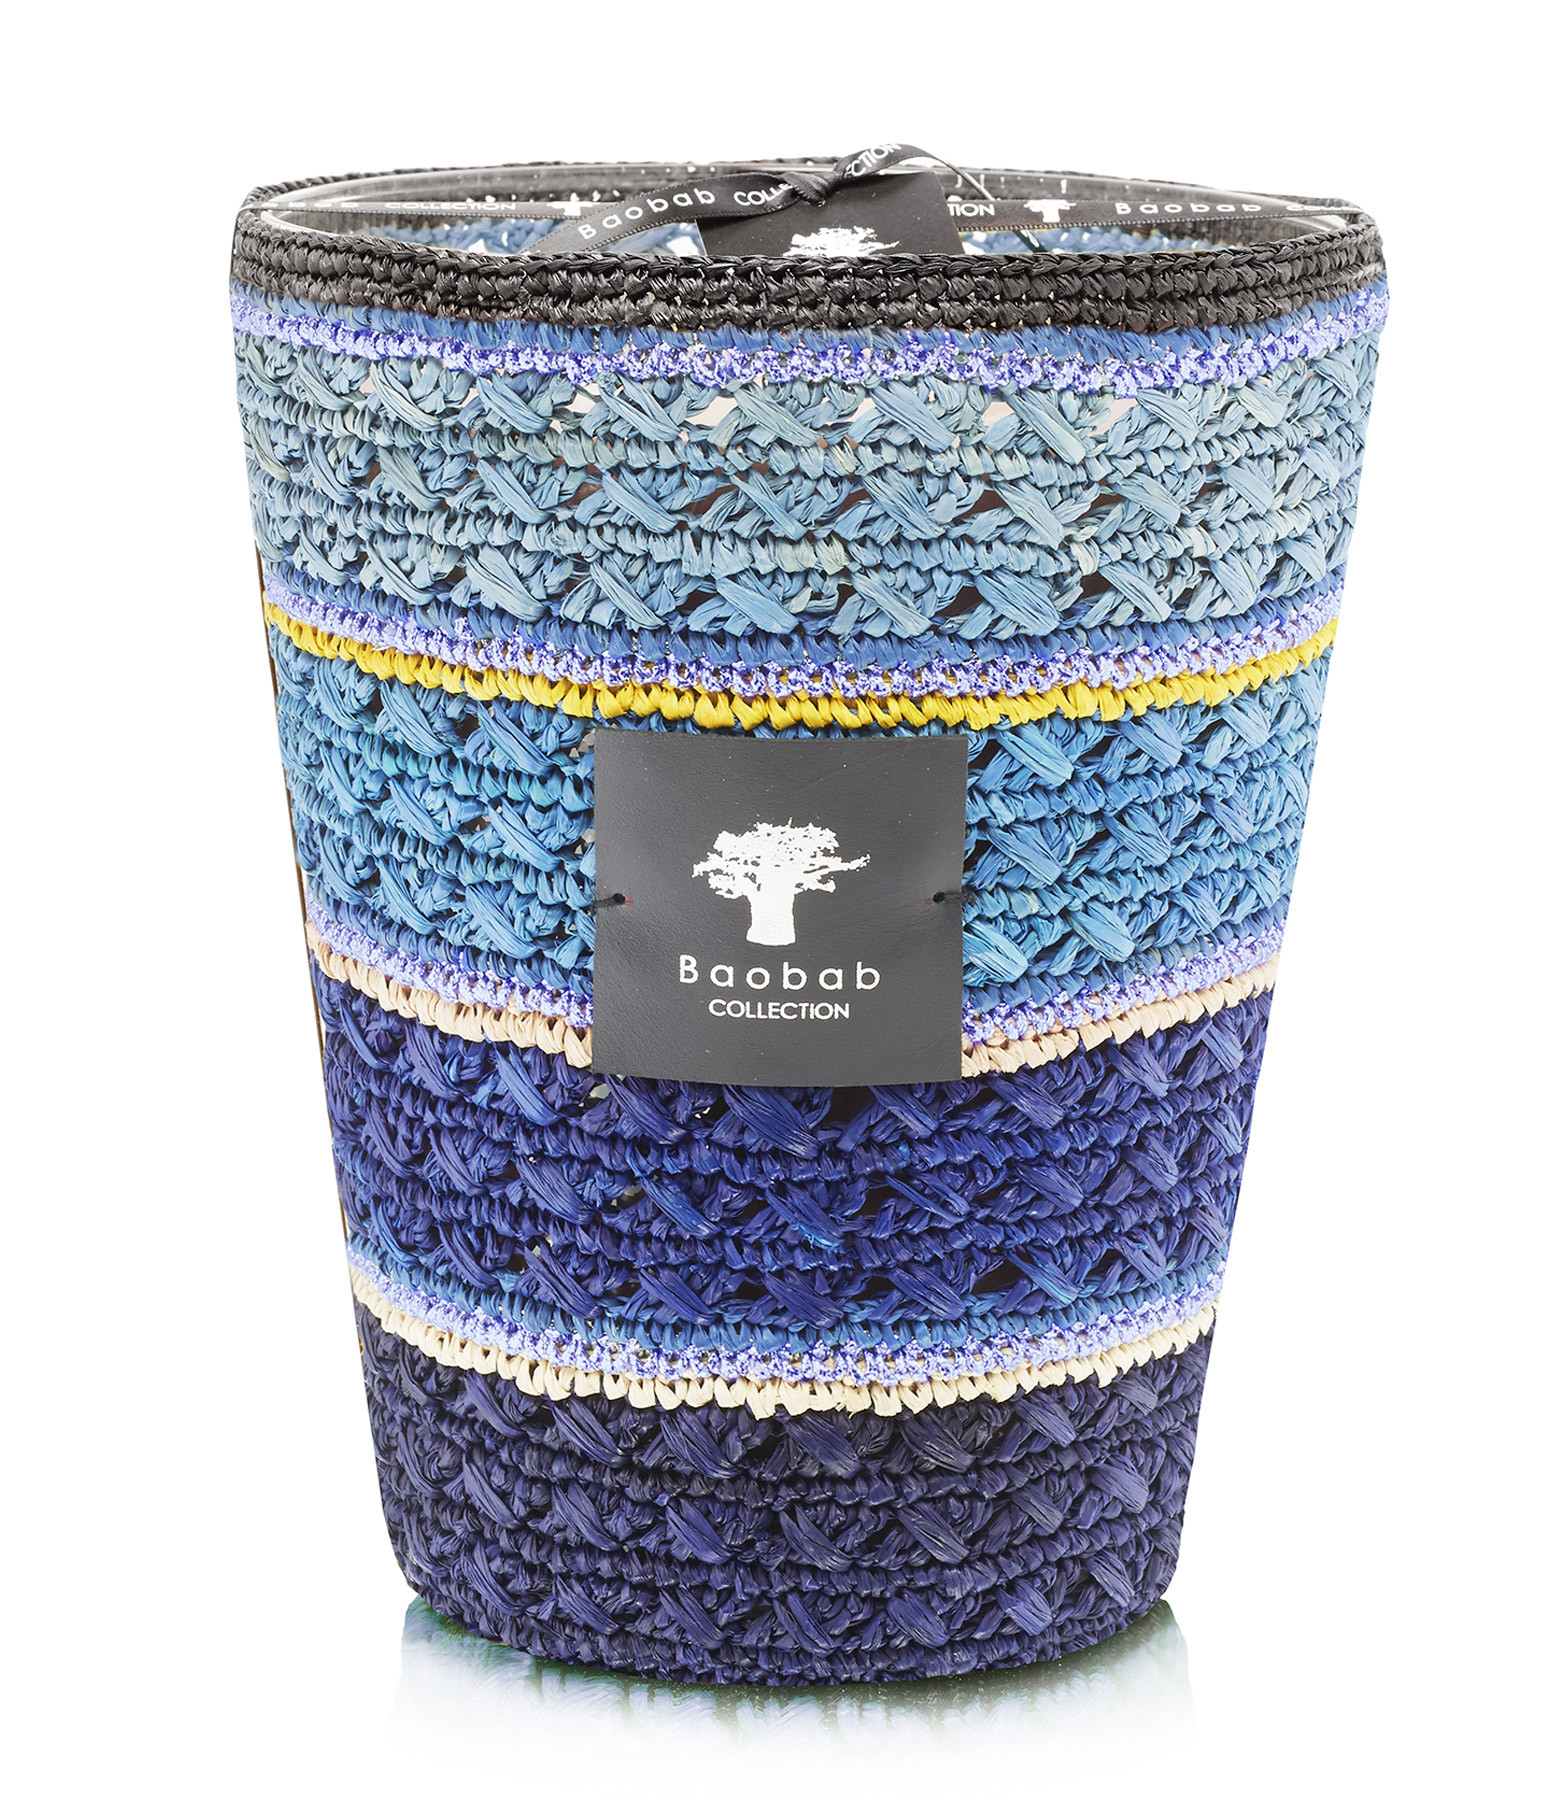 BAOBAB COLLECTION - Bougie Max 24 Tsiraka Raffia Nosy Be Bleu